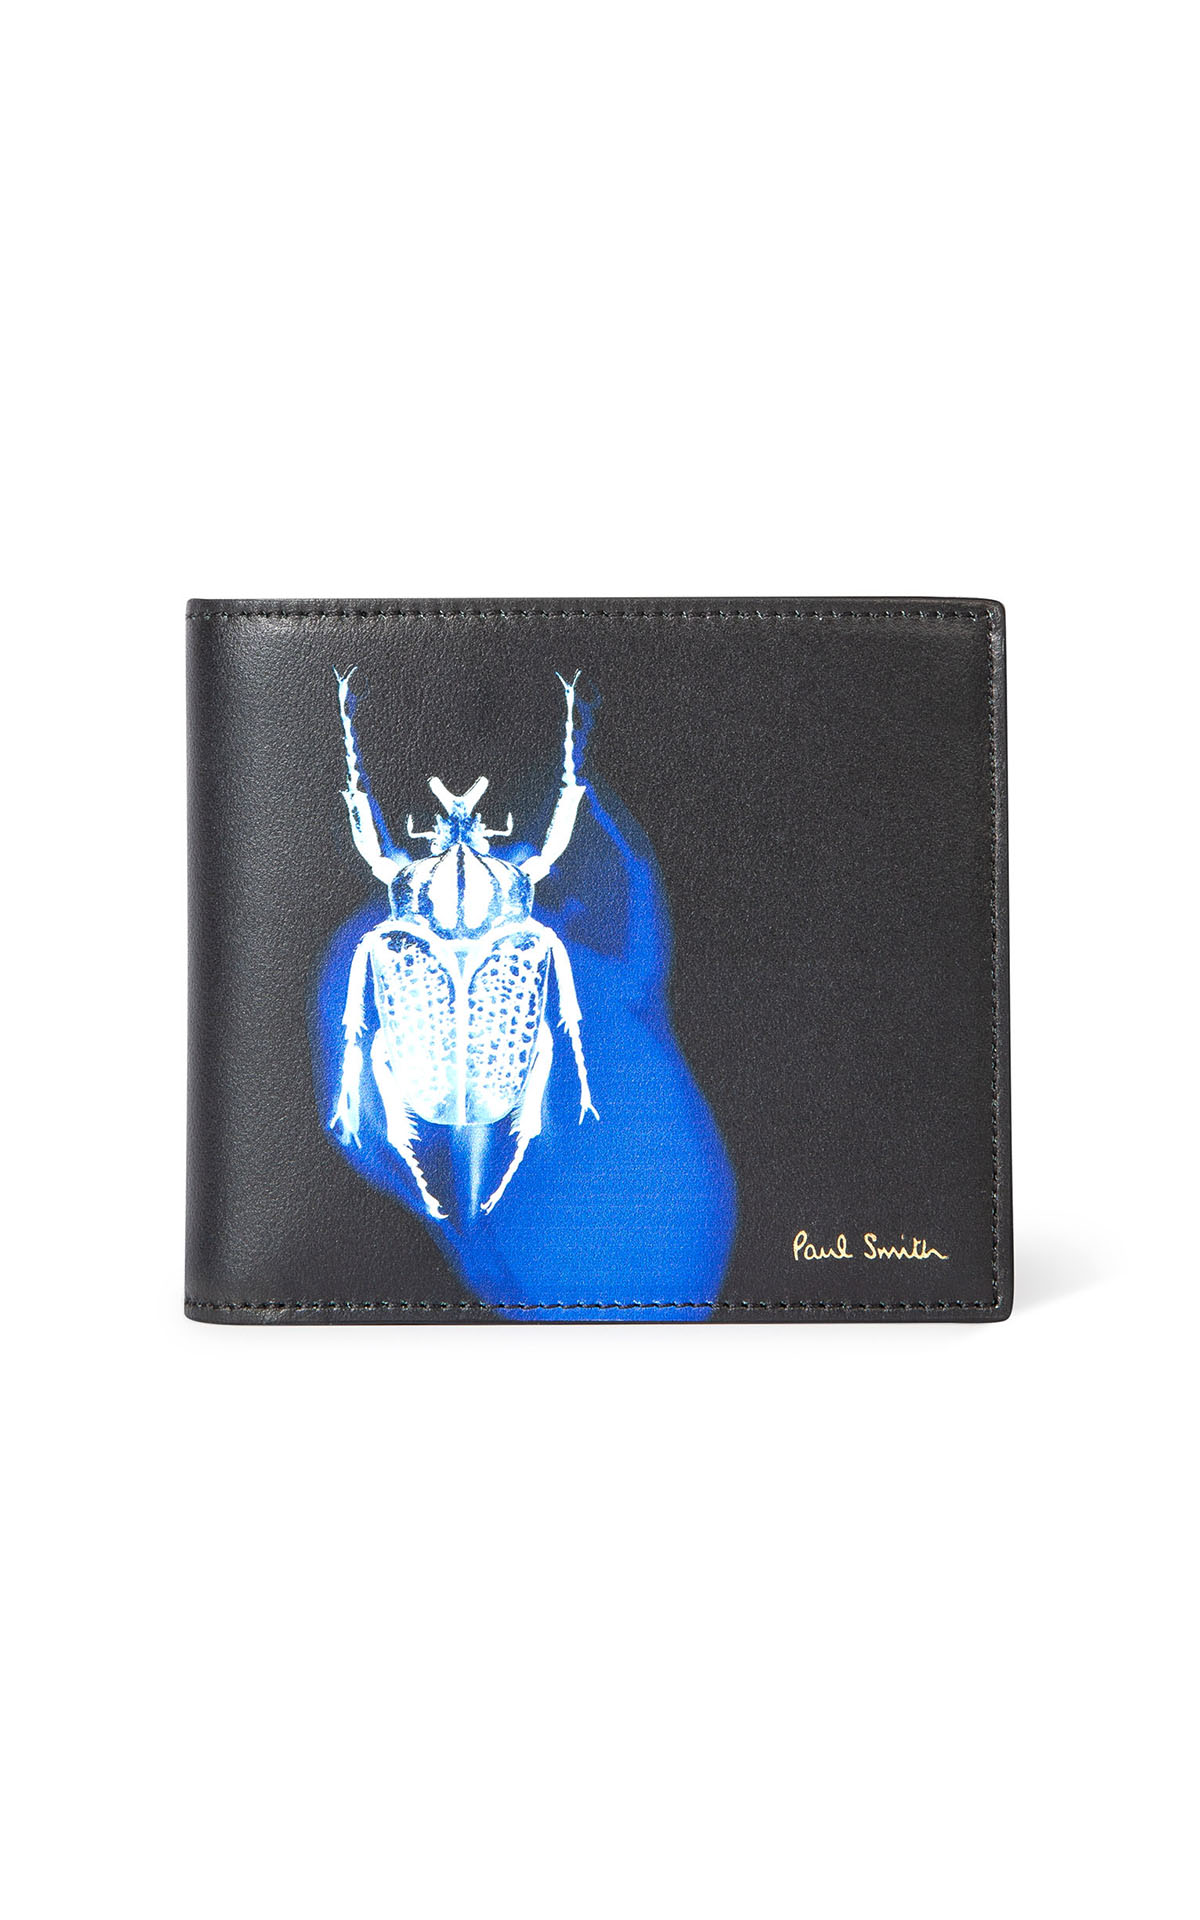 Paul Smith Men's black 'goliath beetle' wallet at The Bicester Village Shopping Collection